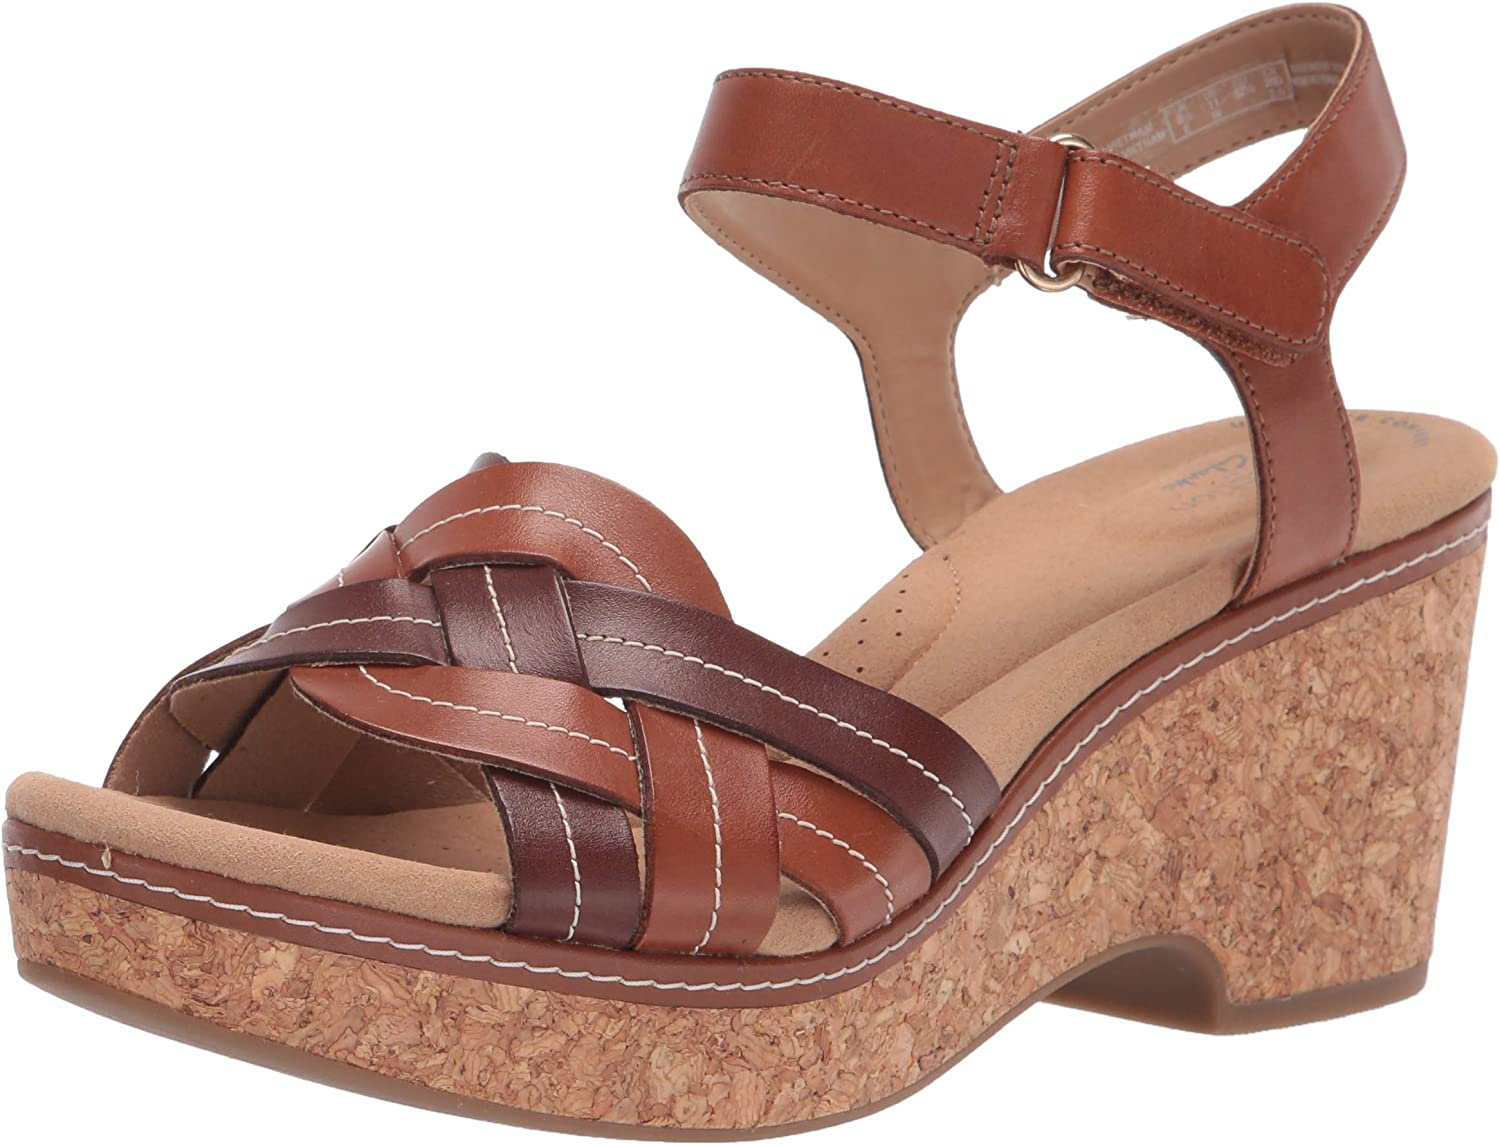 Popular shop is the lowest price challenge Direct store Clarks Women's Giselle Coast Sandal Wedge